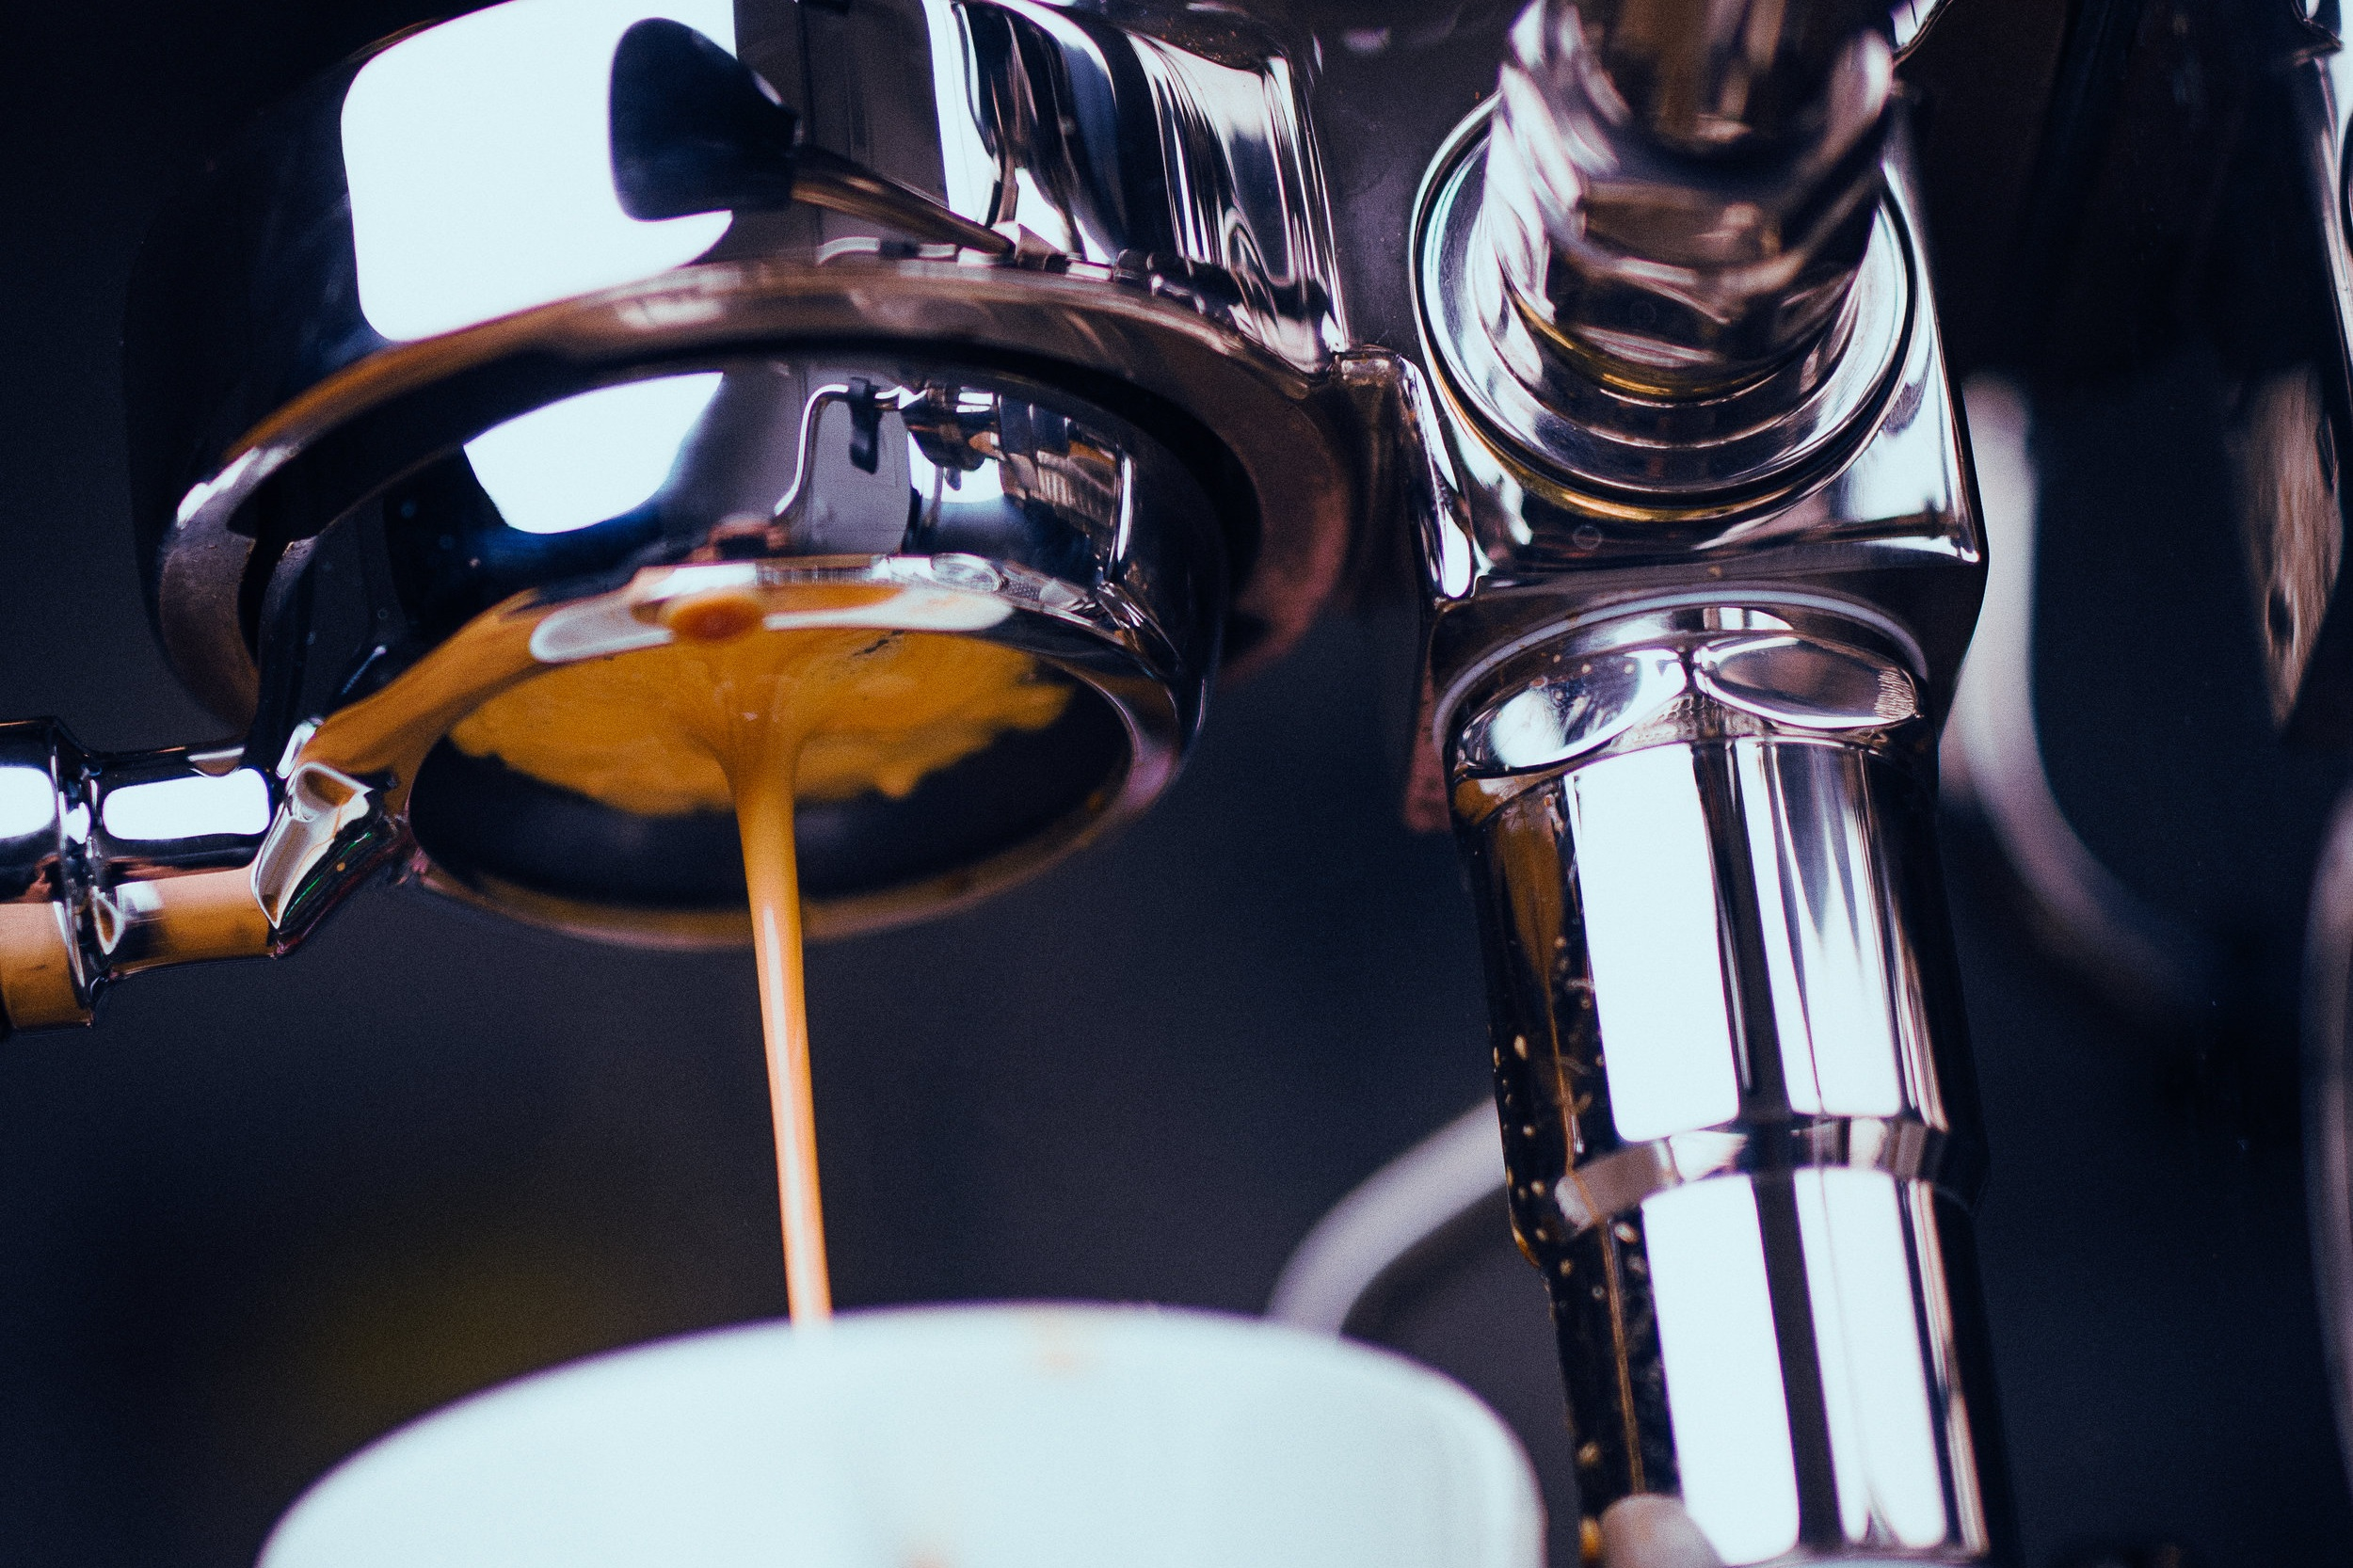 Canva+-+Espresso+Machine+Extracting+Coffee+and+Dripping+in+White+Cup.jpg